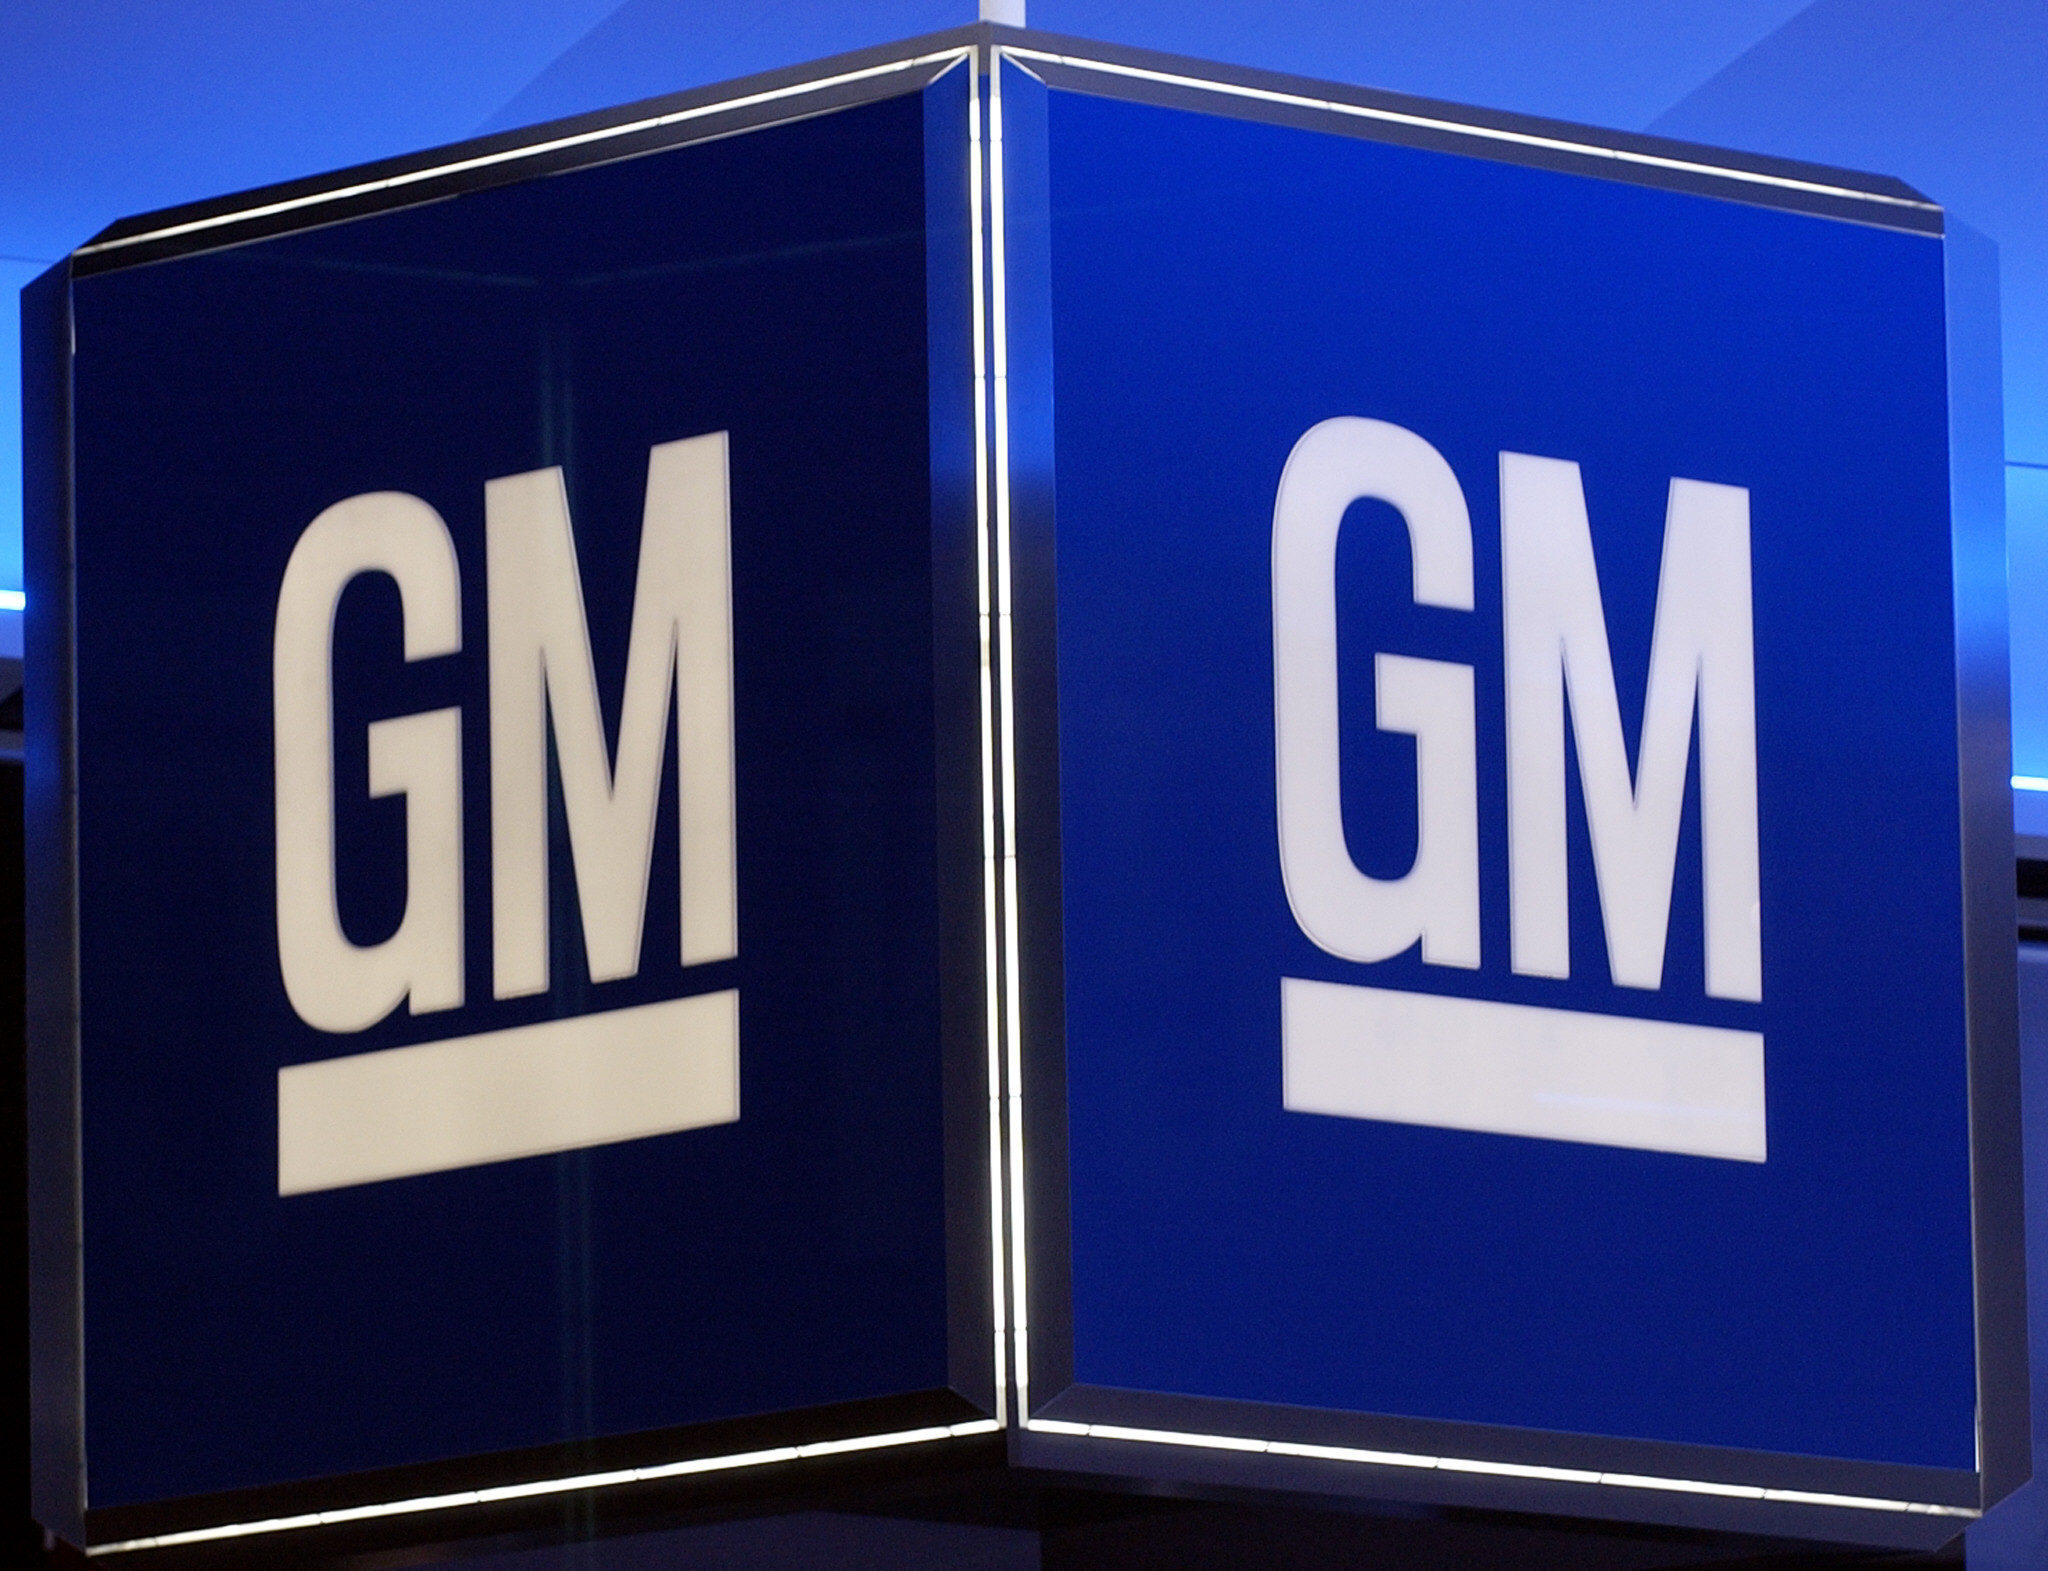 Gm Car Recall: General Motors Recalls 4 Million Vehicles After Software